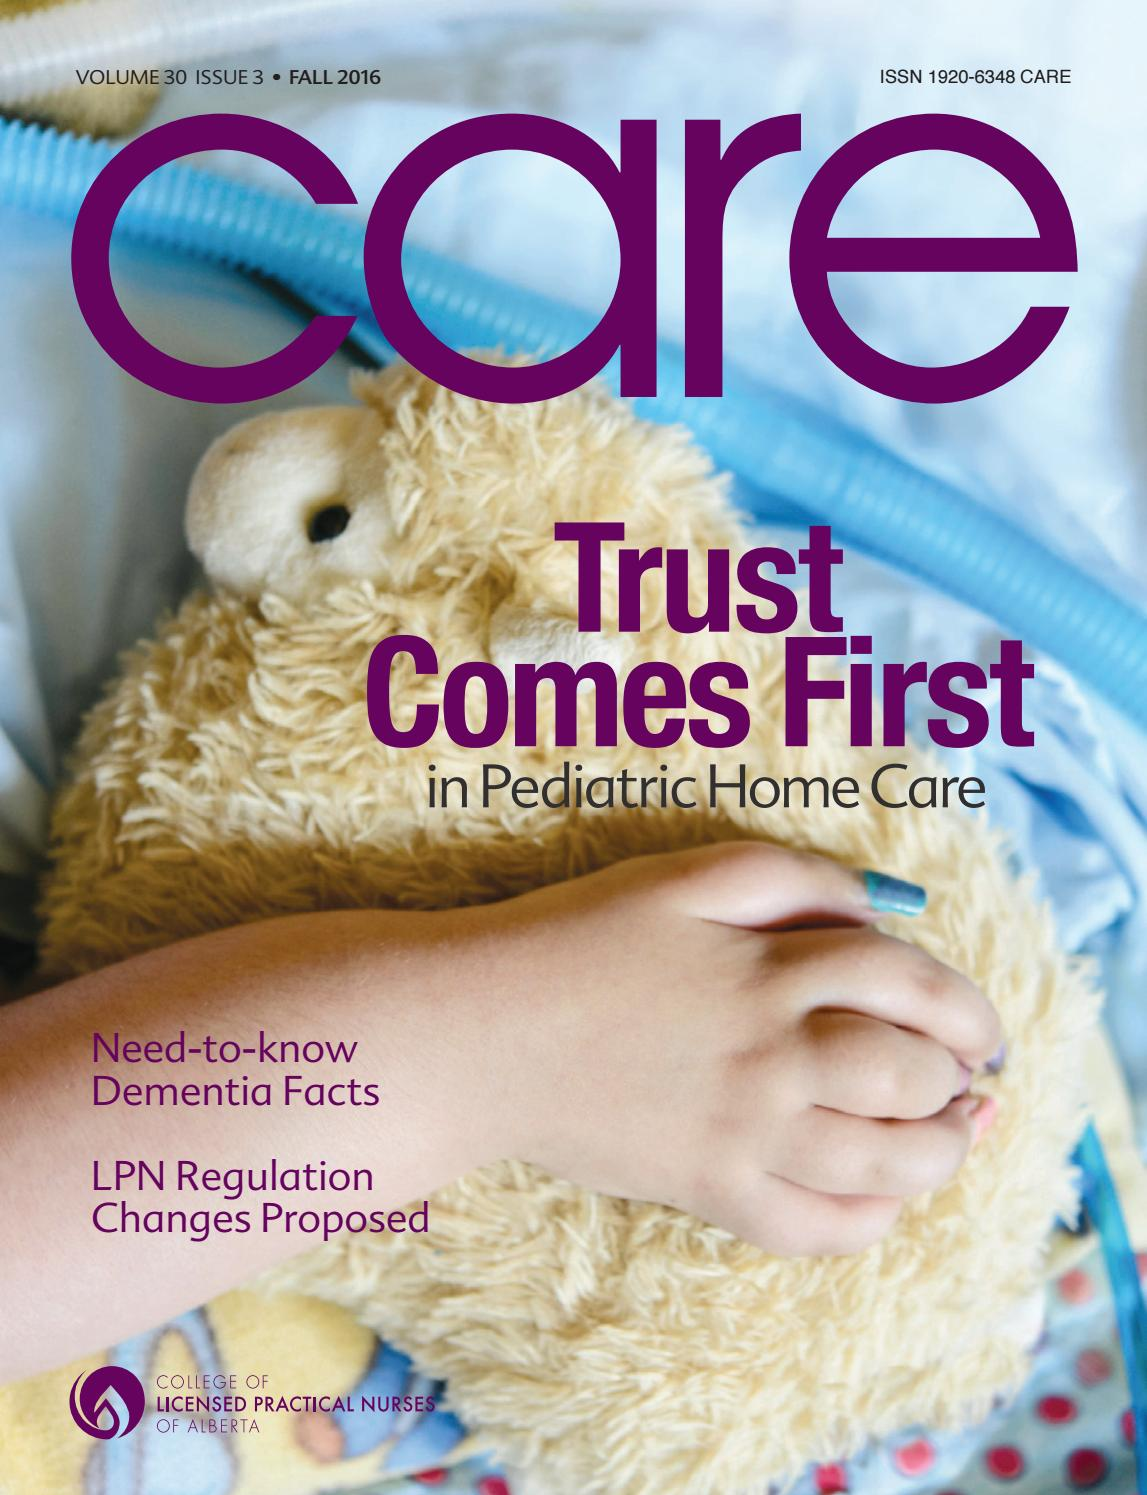 Care fall 2016 college of licensed practical nurses of alberta care fall 2016 college of licensed practical nurses of alberta by college of licensed practical nurses of alberta issuu aiddatafo Choice Image